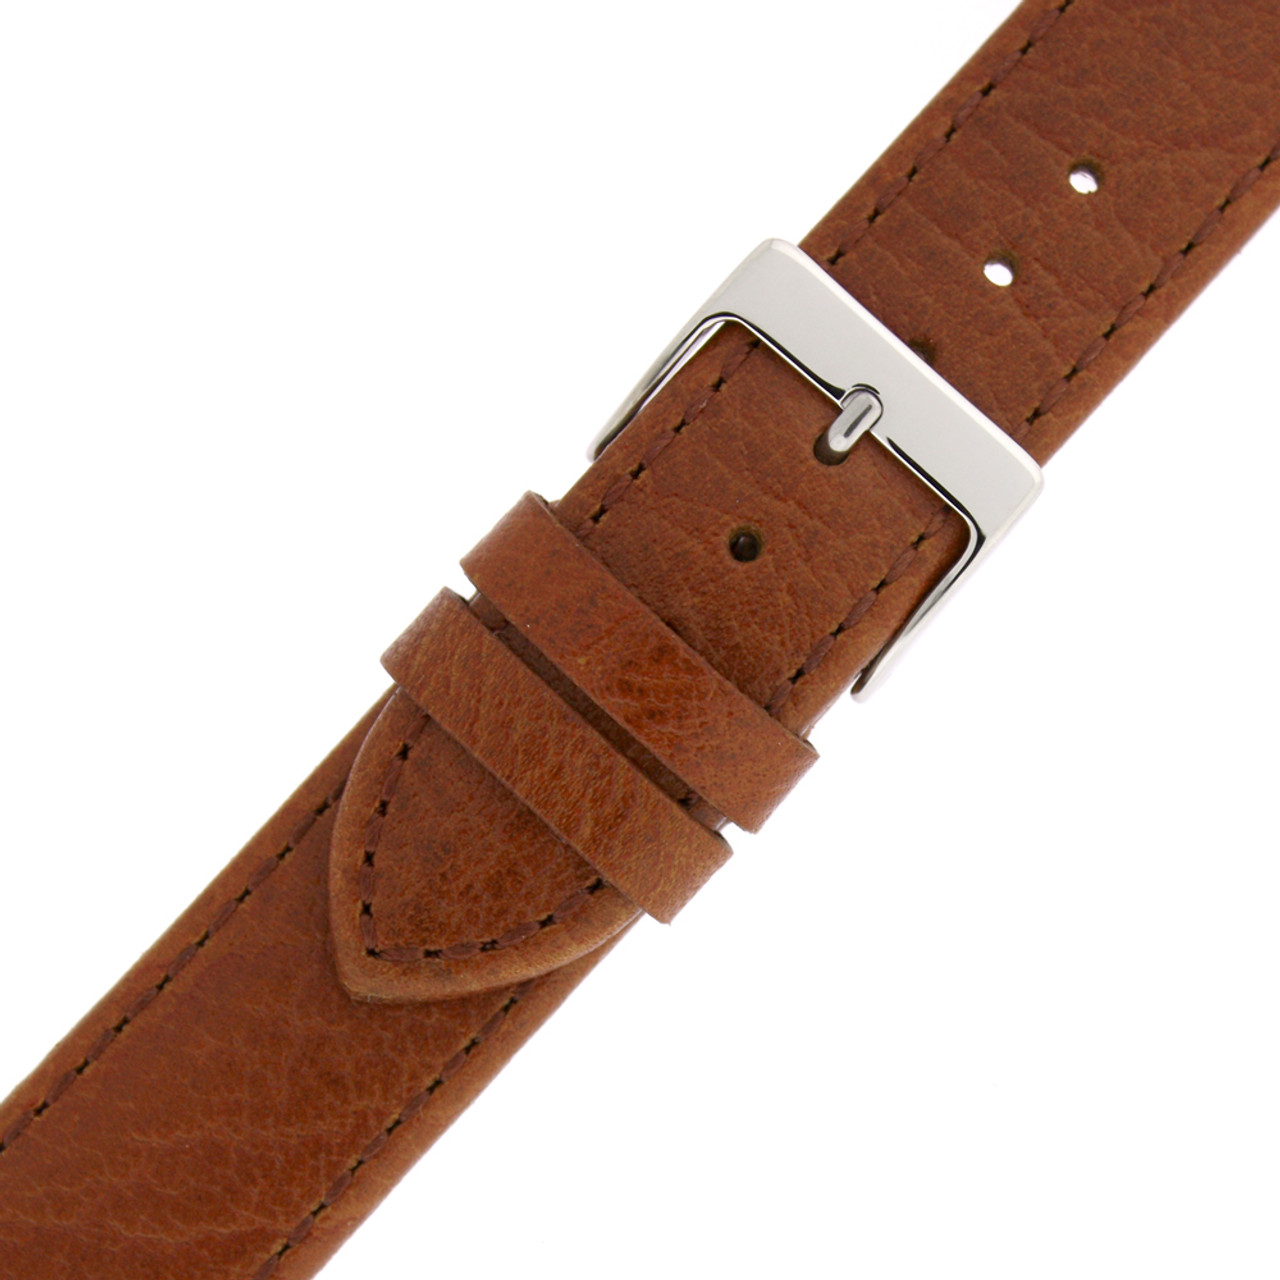 Leather Watch Band in Honey Brown by Tech Swiss - Buckle View